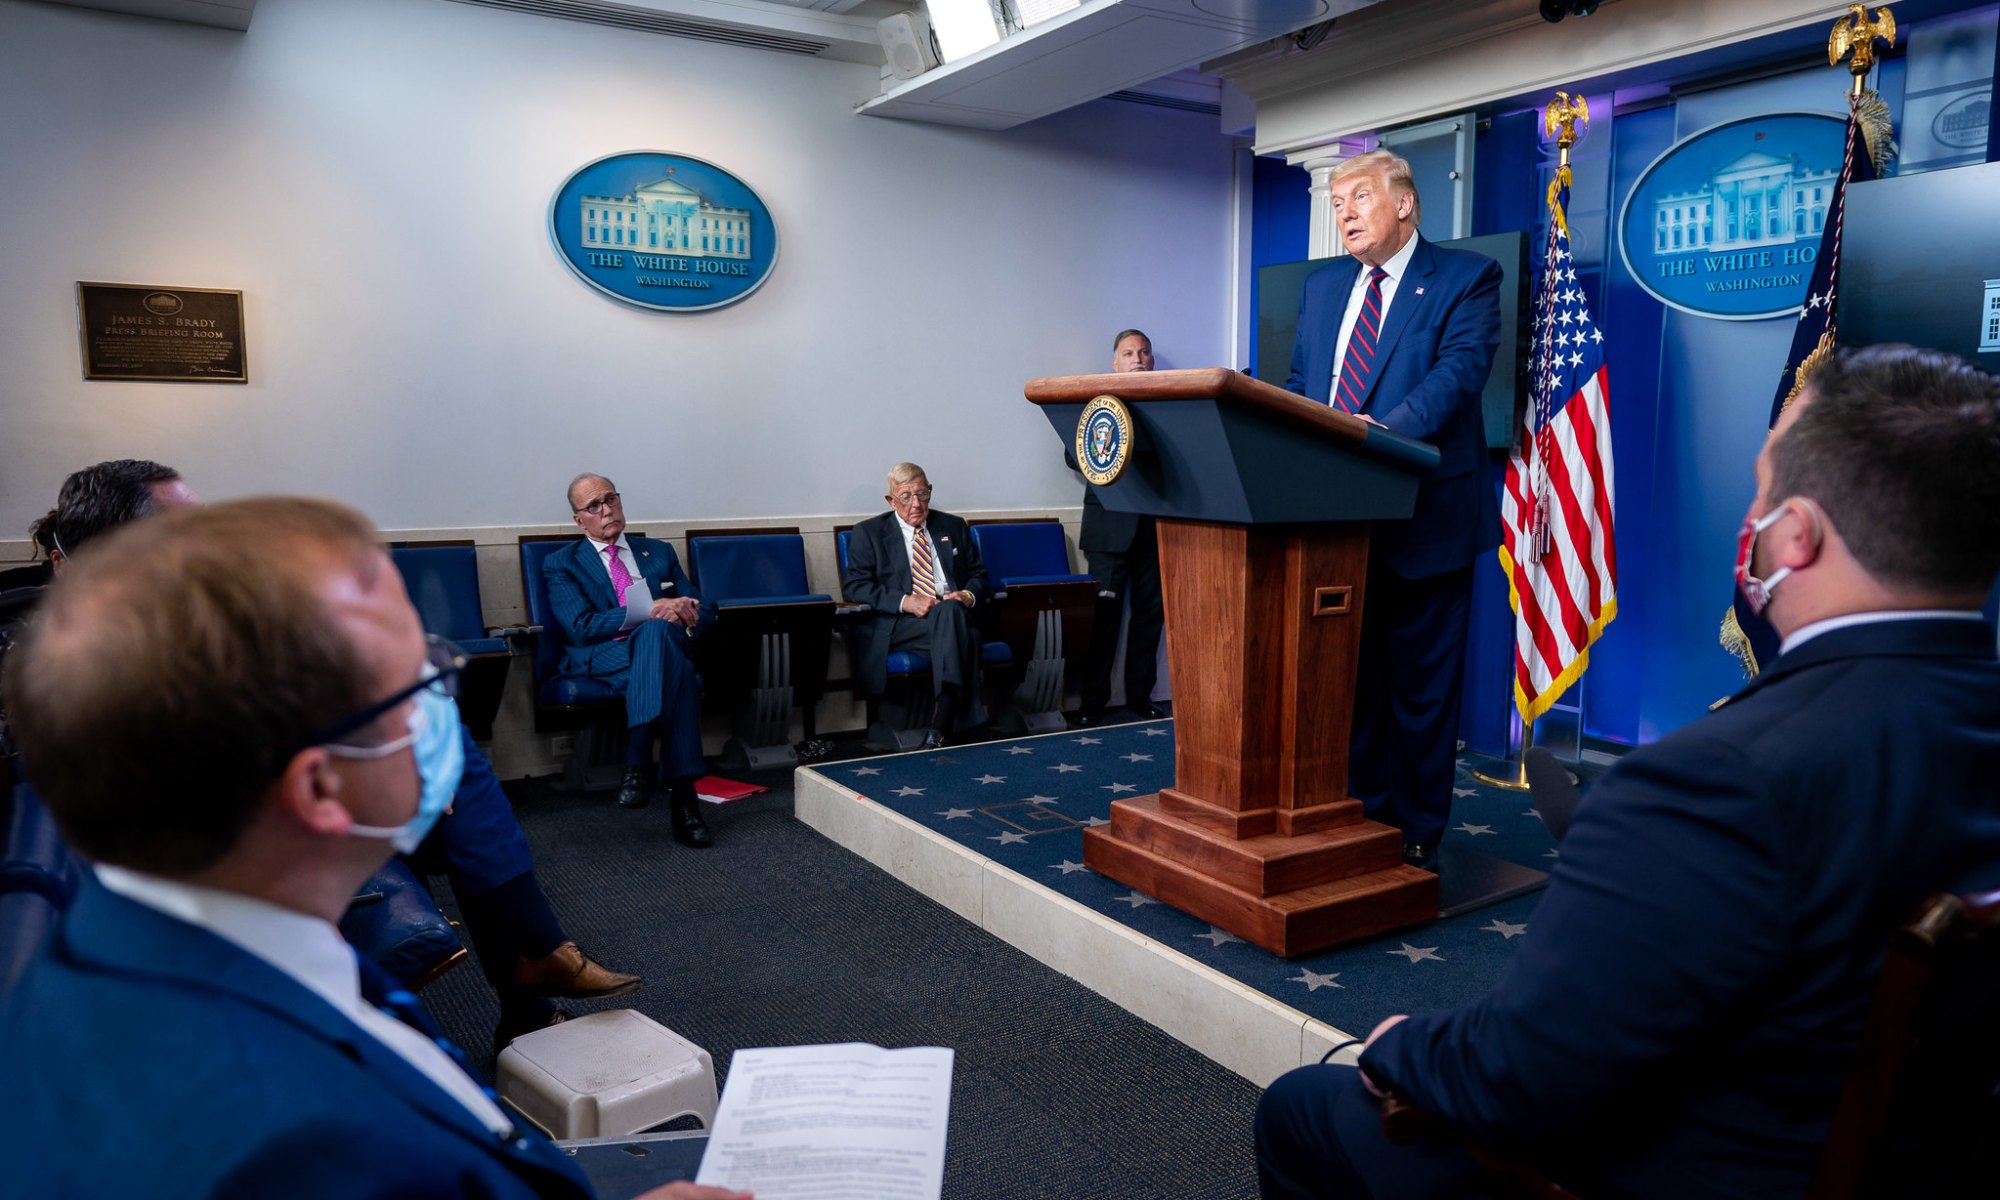 Donald Trump delivers a press briefing behind a wooden podium to a group of reporters.